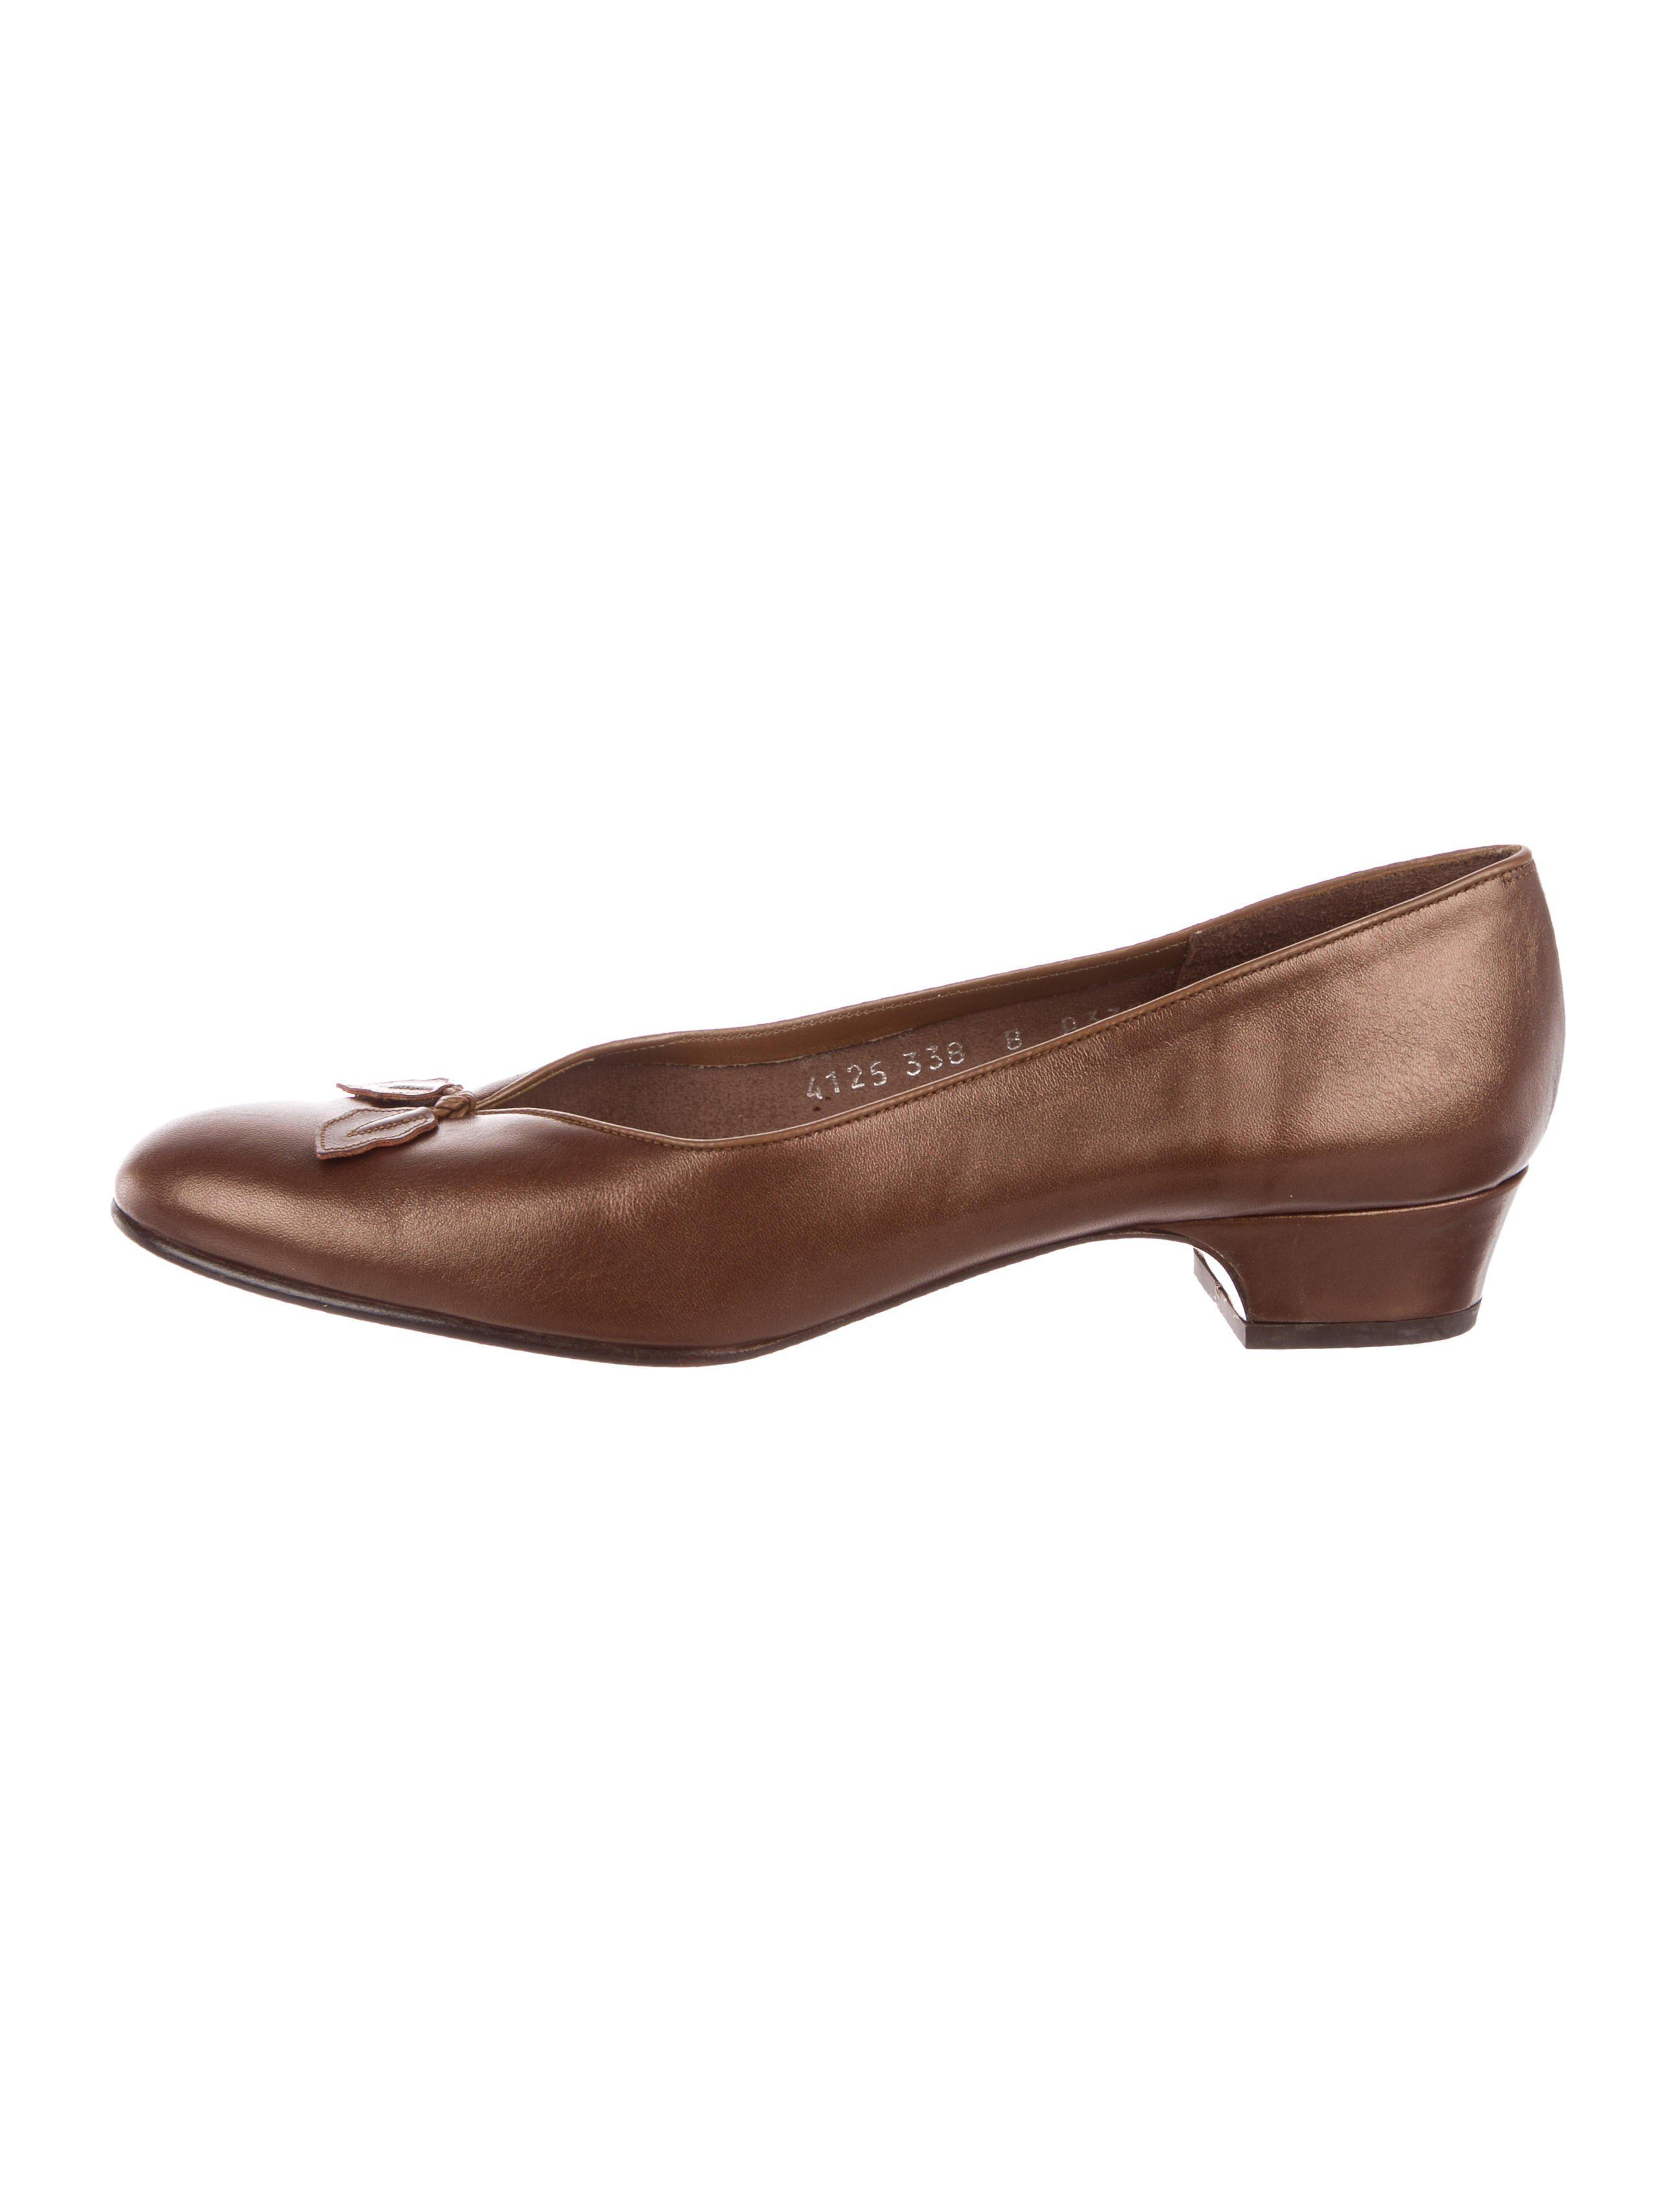 Salvatore Ferragamo Leather Leaf-Accented Pumps Cheapest for sale many kinds of online from china online real cheap online UaJDuyP